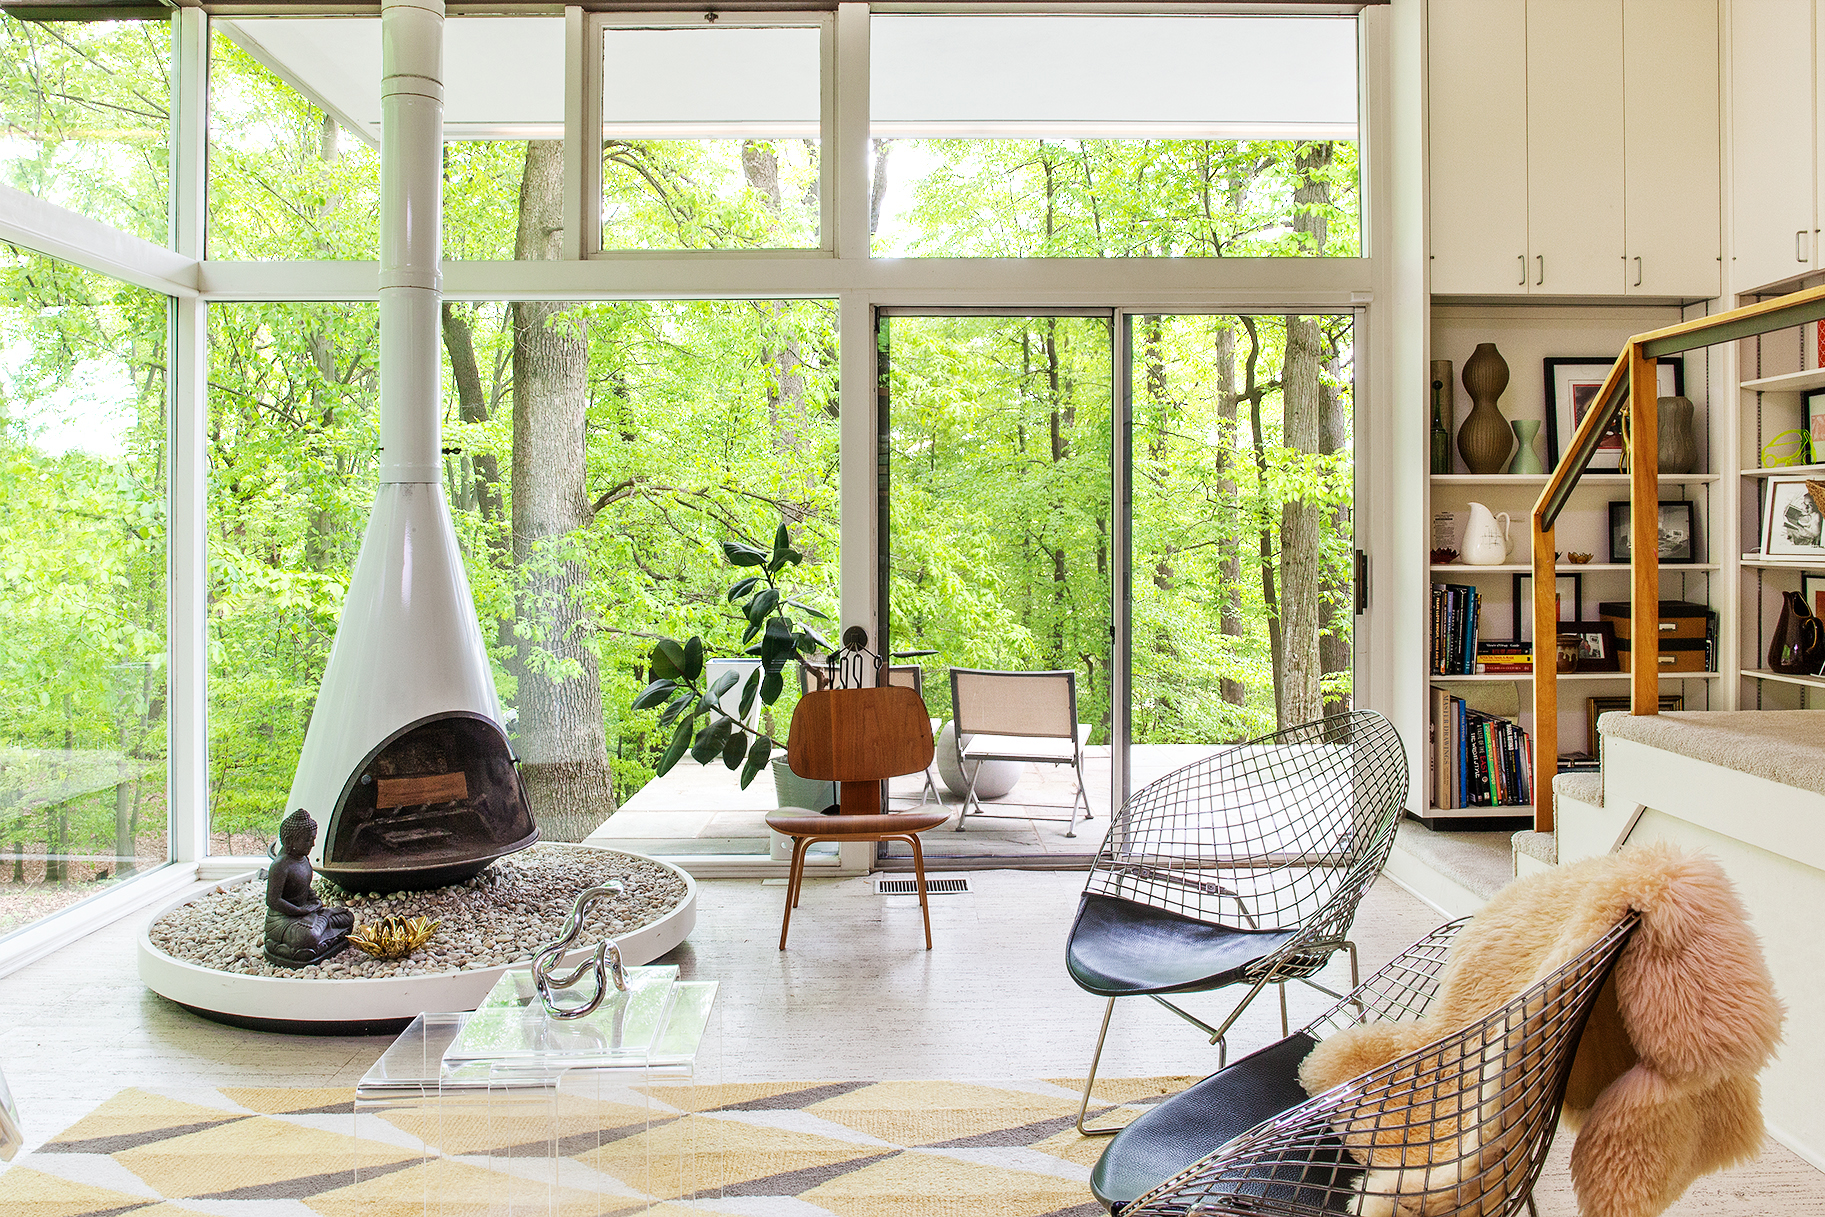 'We never dreamed we'd live in a Neutra house'